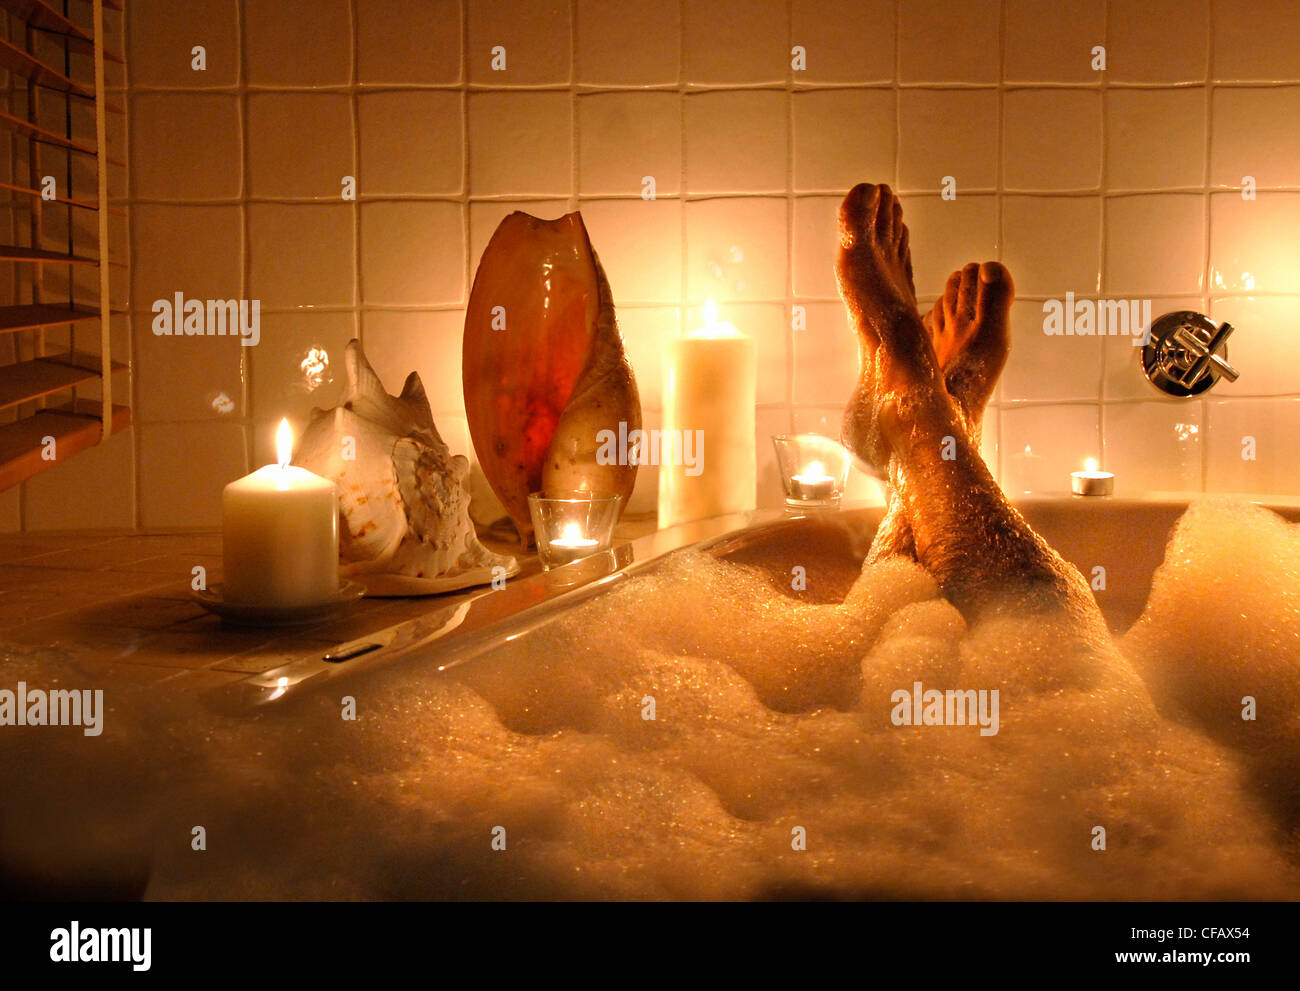 Wellness, bath, bathtub, relaxation, pleasure, spoil, woman, feet ...